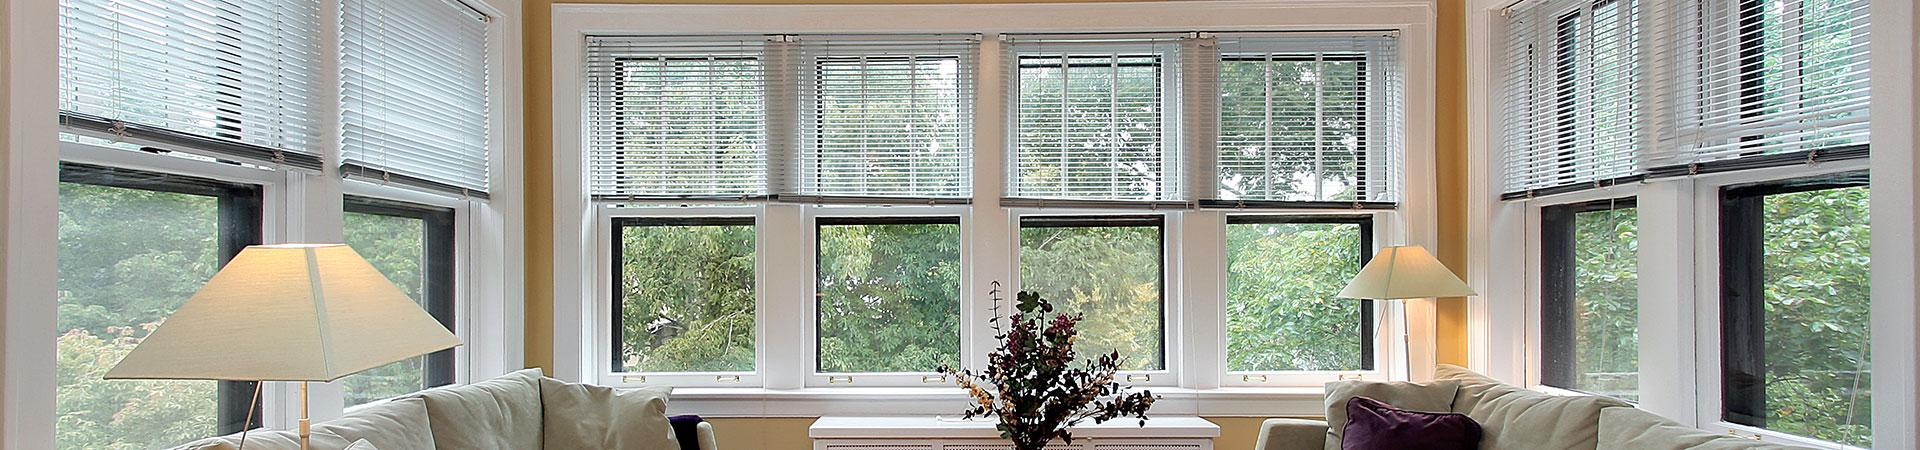 Double Hung Replacement Windows in Cary, NC, Wake Forest, Raleigh